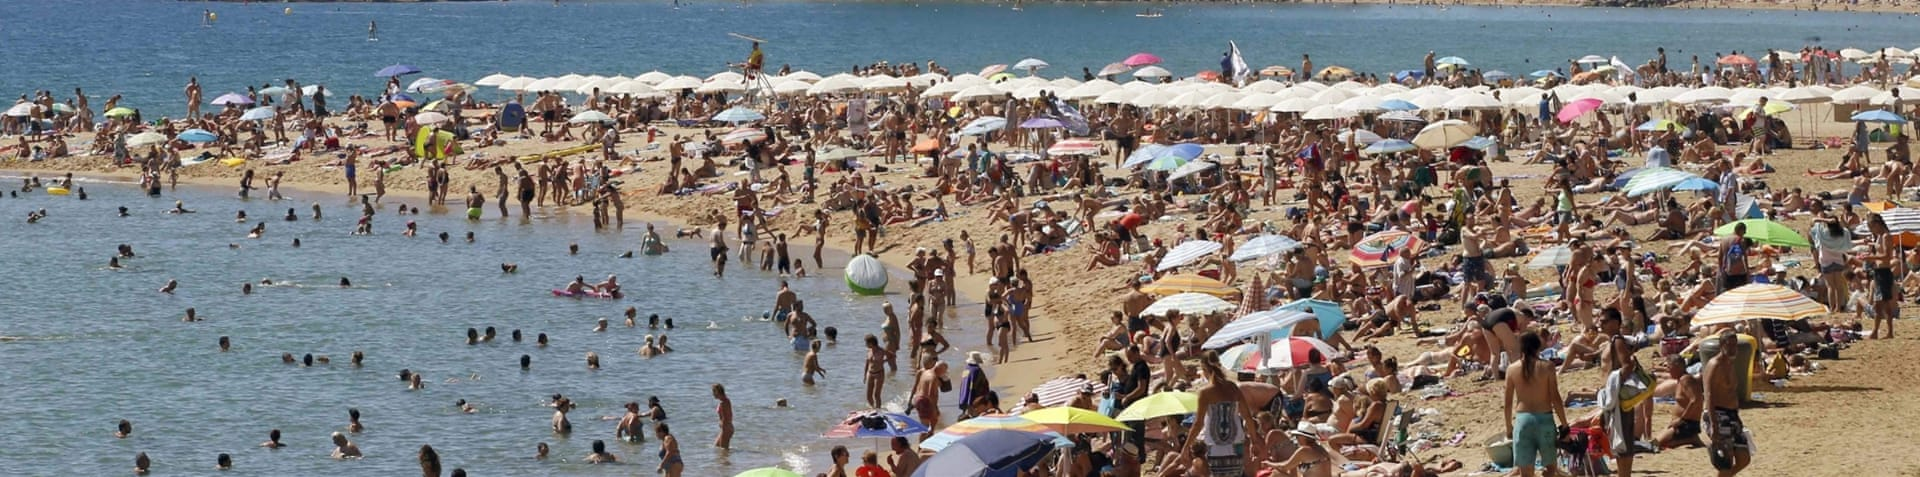 Northern summer temperatures usually tend to peak during the month July [Andreu Dalmau/EPA]